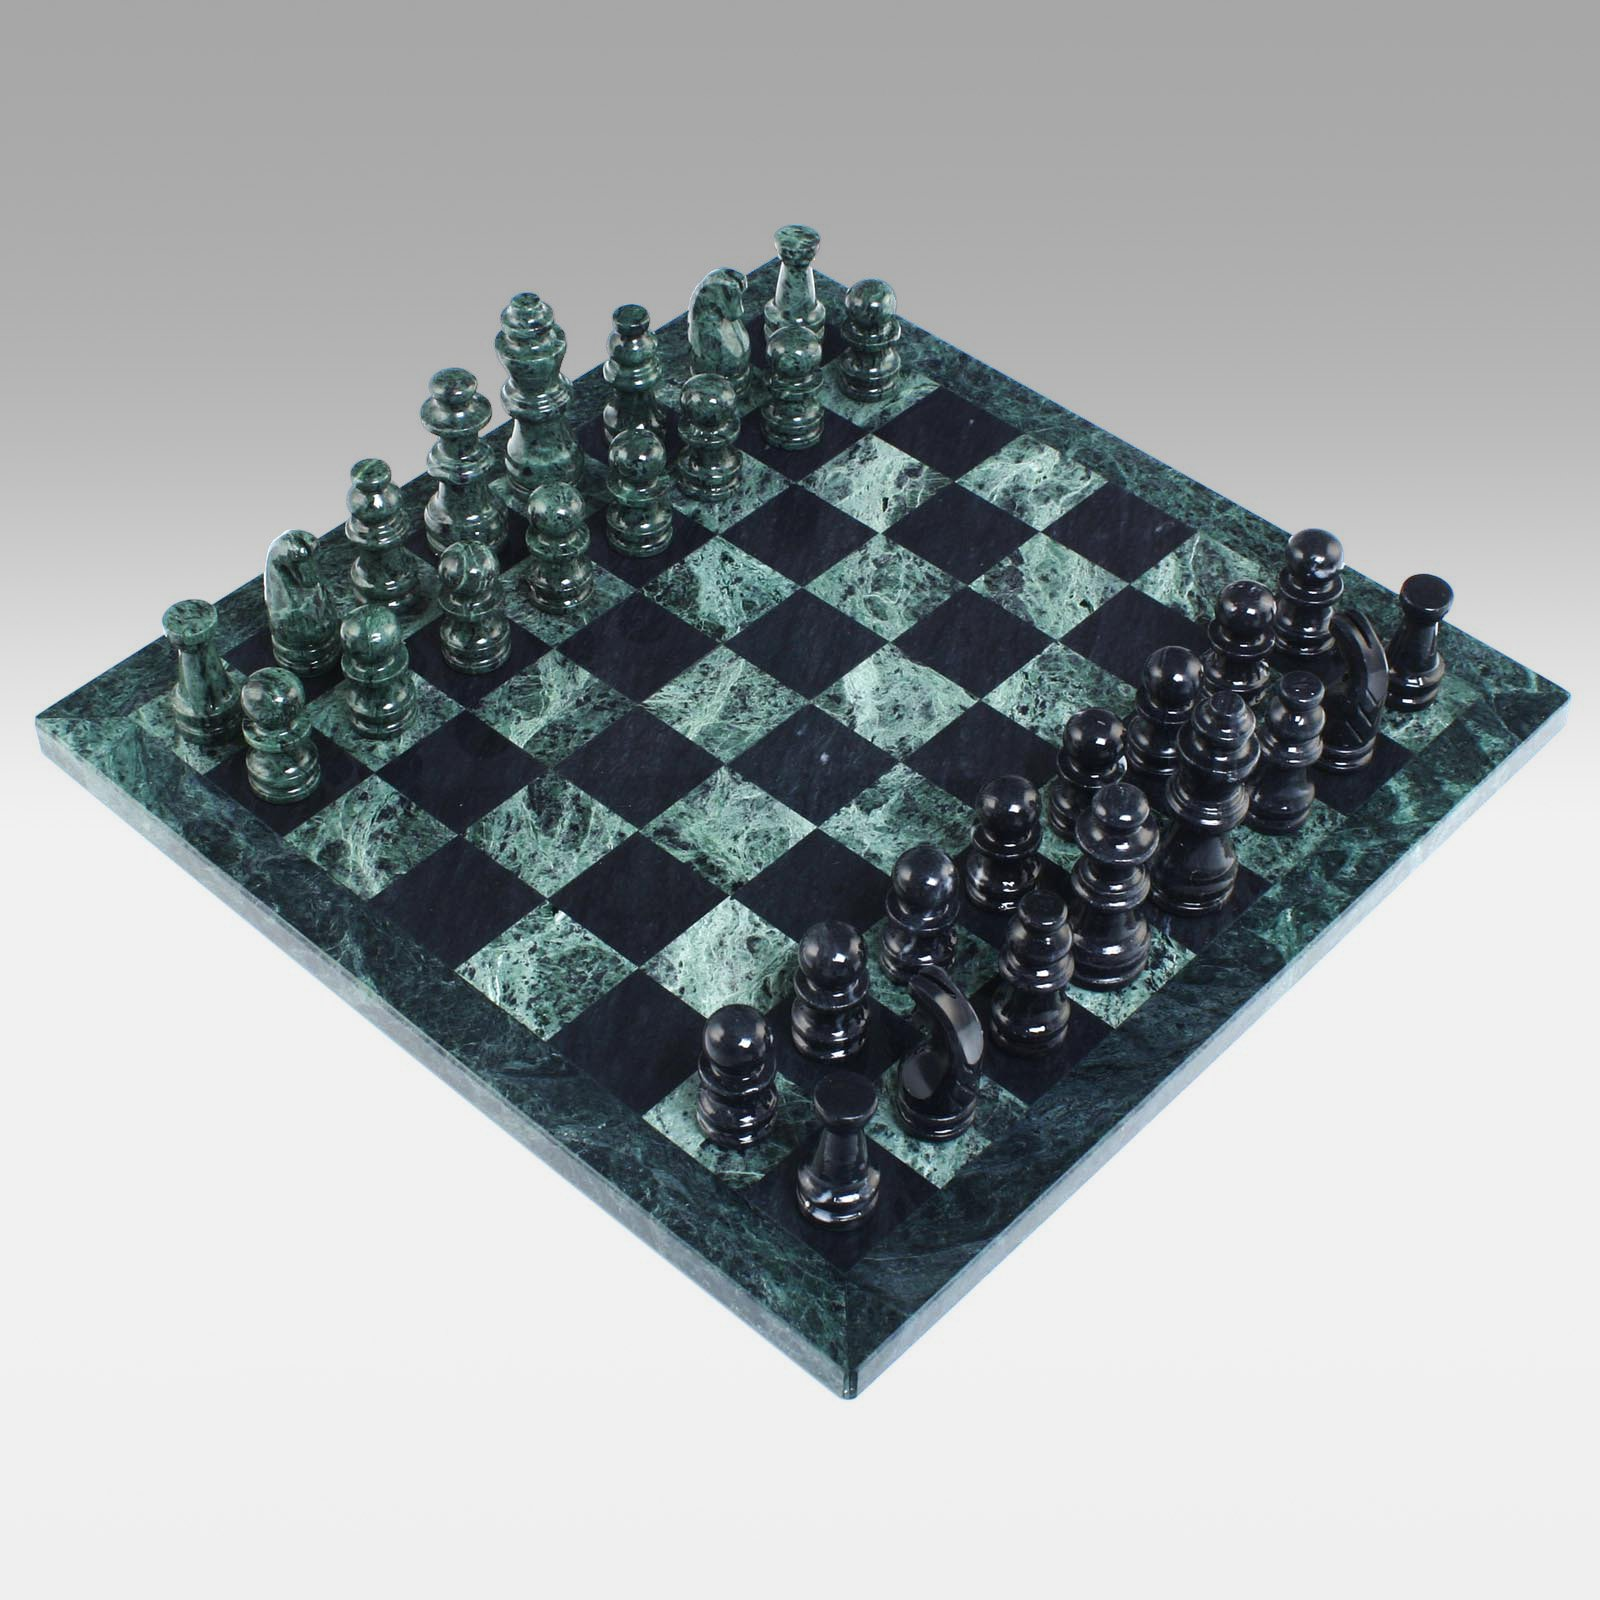 Black and Green Marble Chess Set by CHH Quality Product Inc